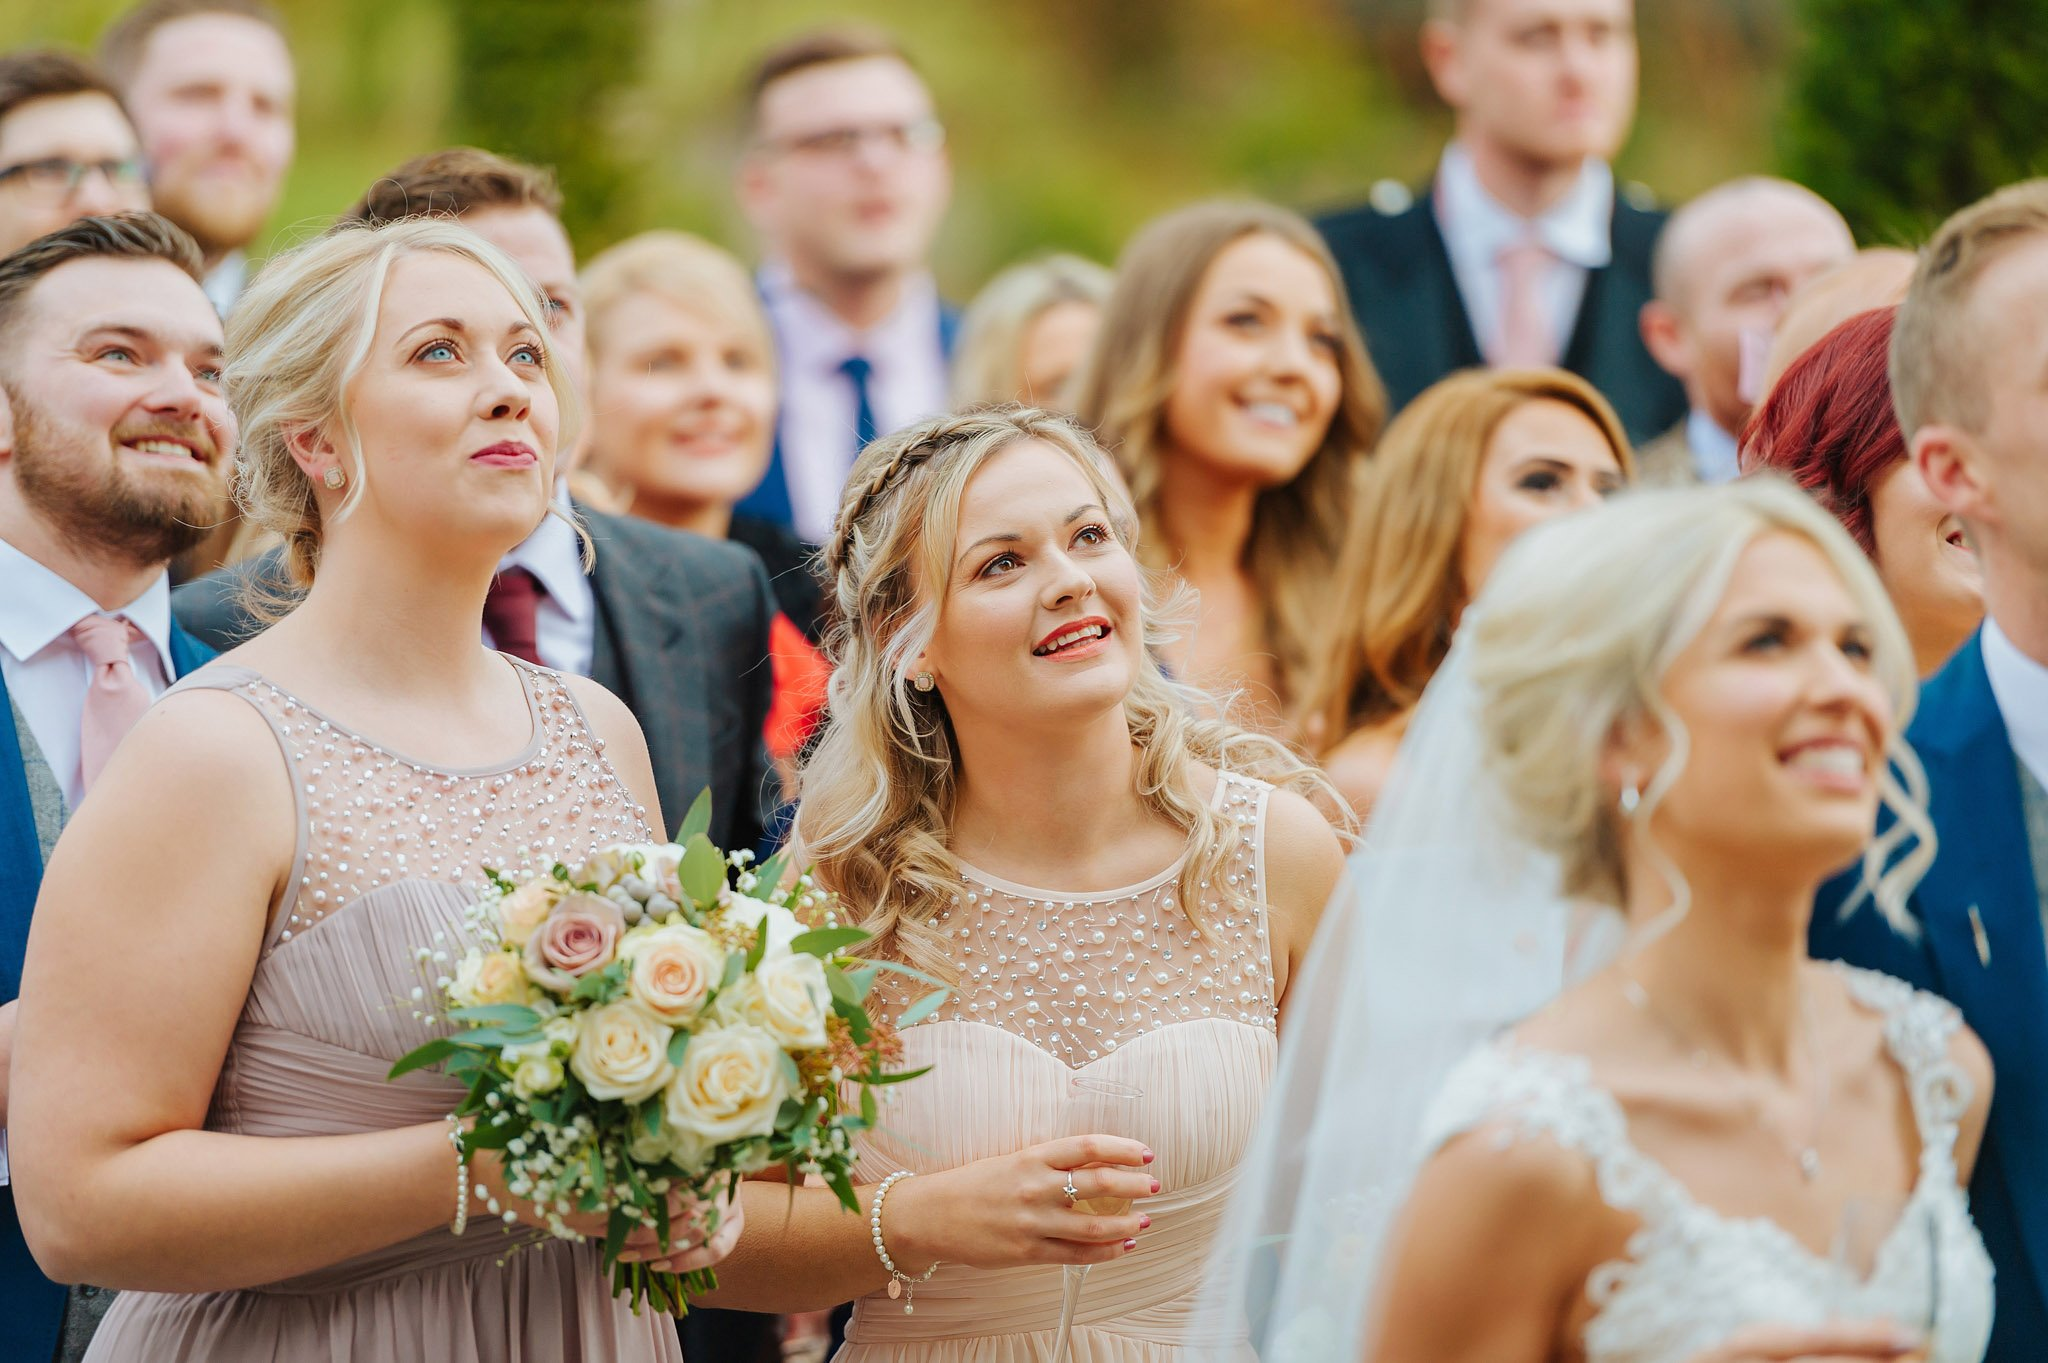 Lemore Manor wedding, Herefordshire - West Midlands | Sadie + Ken 53